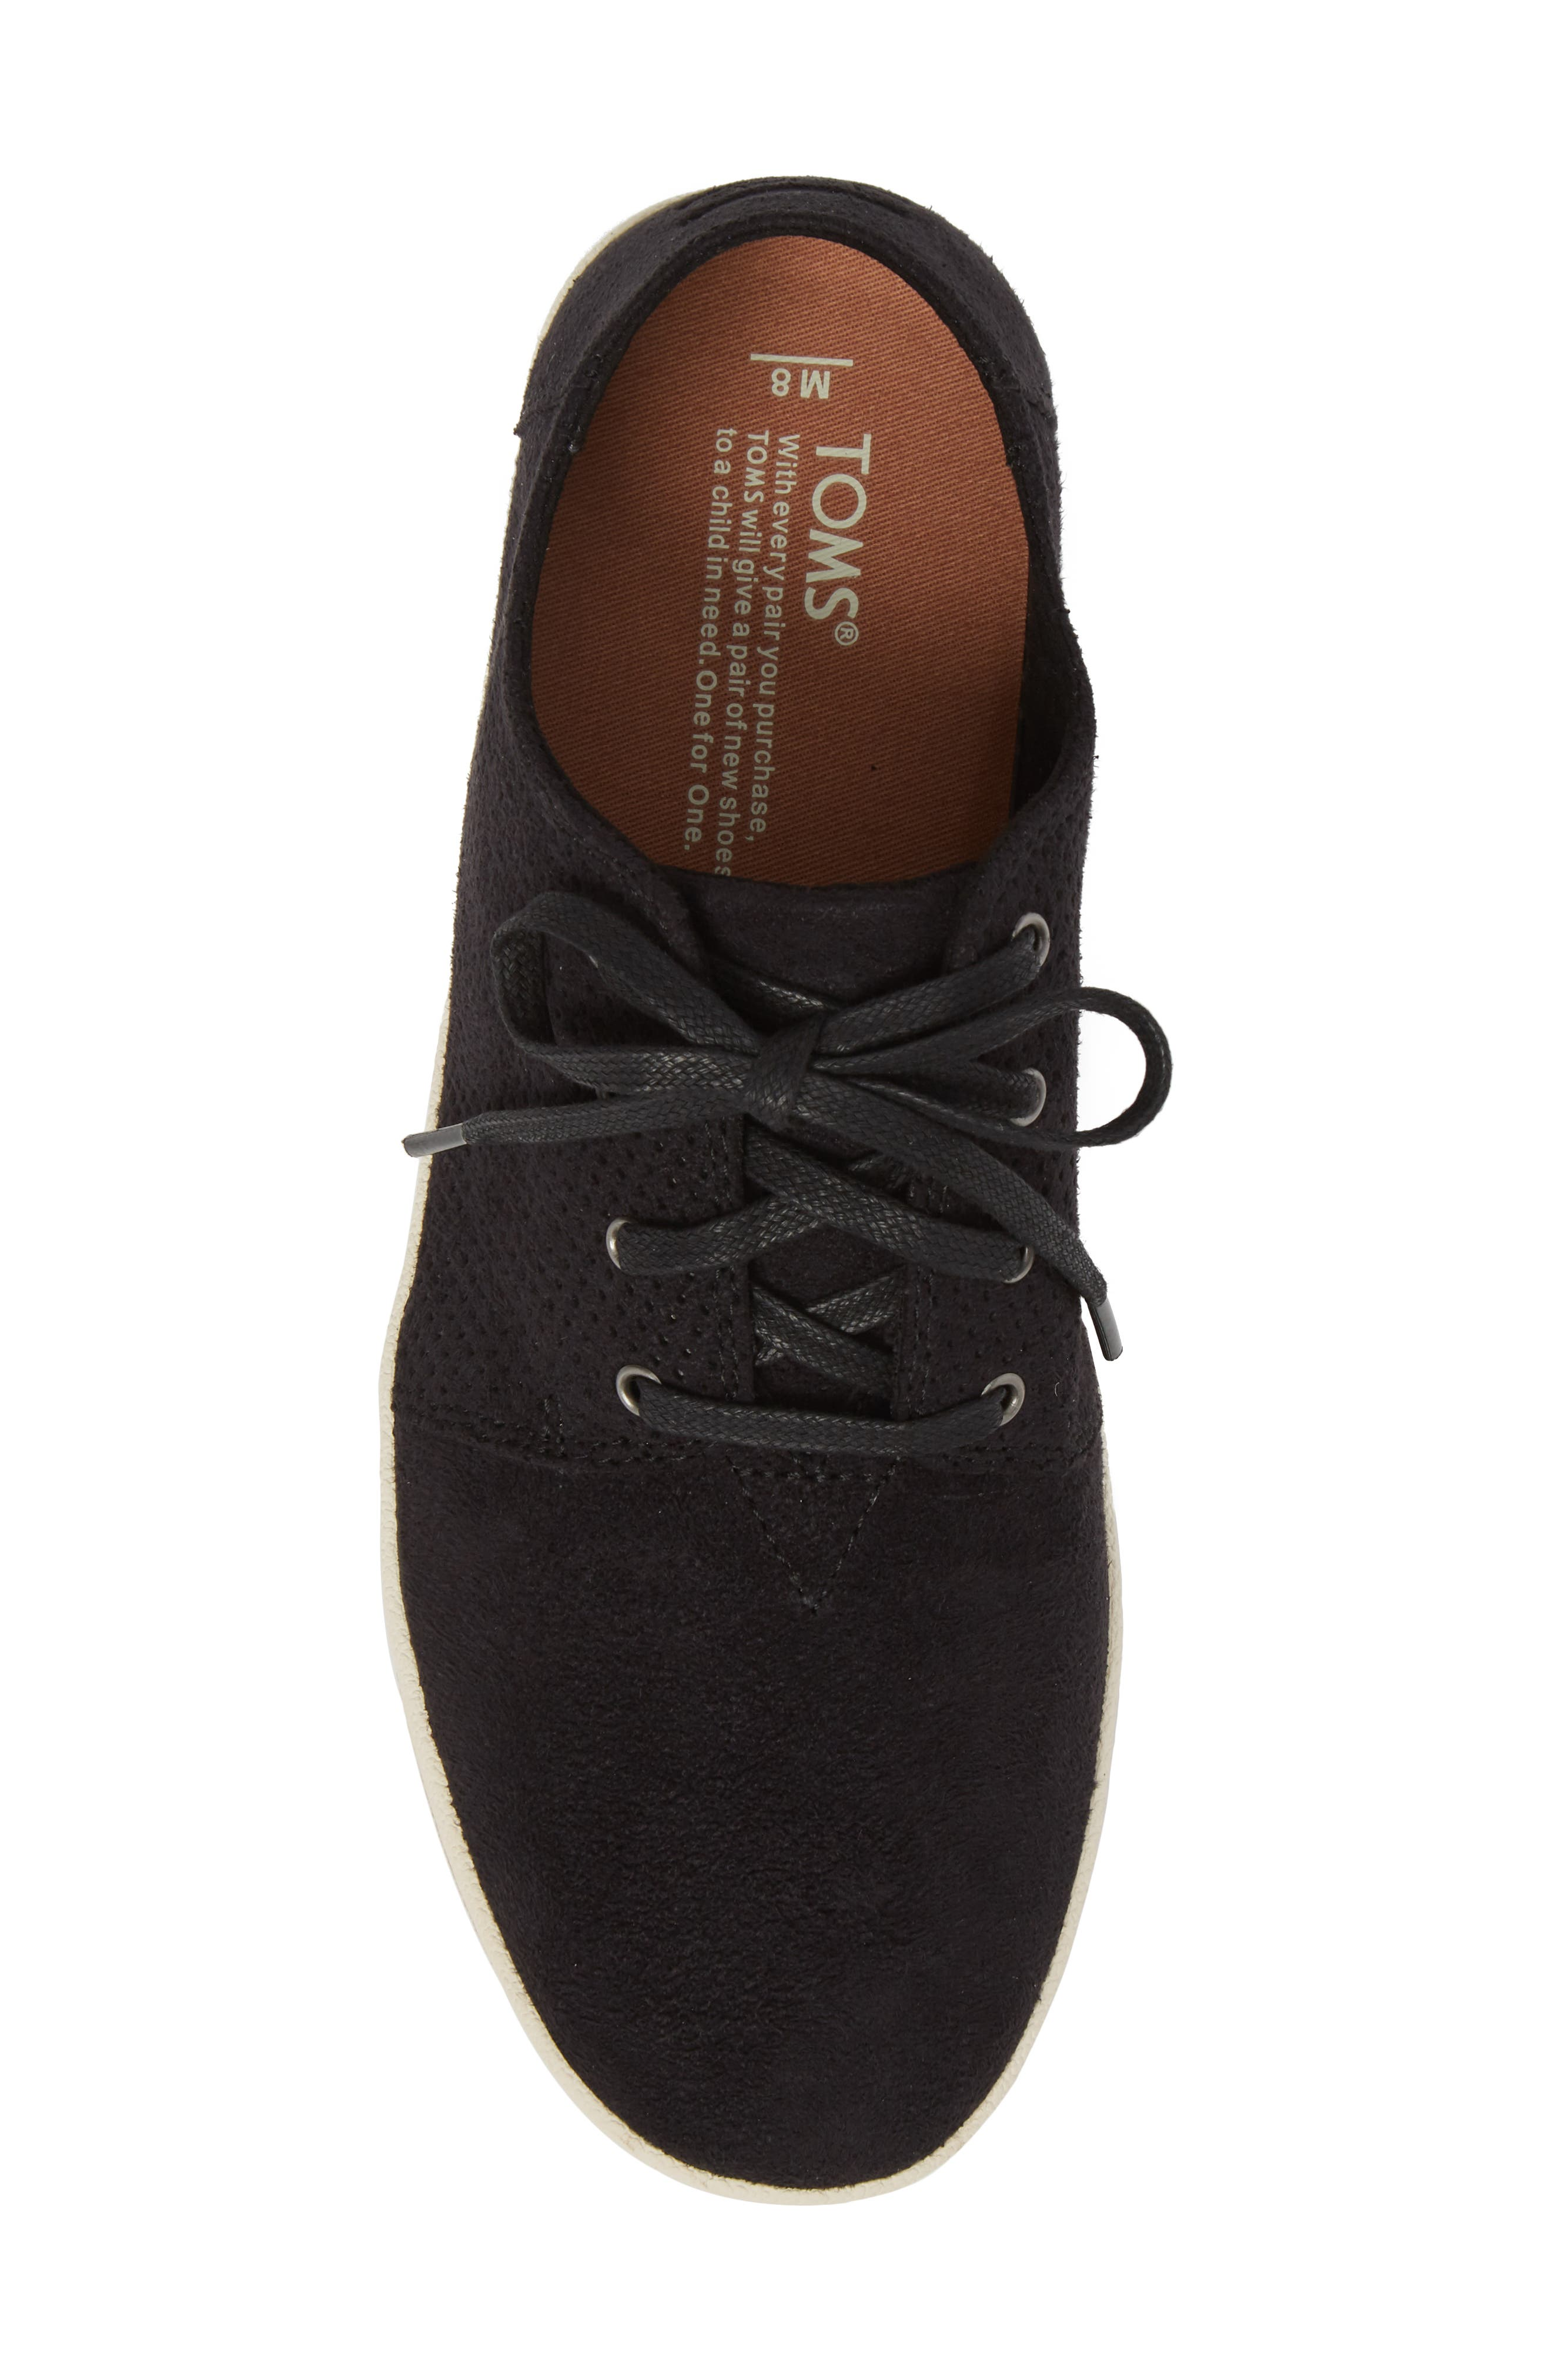 Payton Perforated Sneaker,                             Alternate thumbnail 5, color,                             001